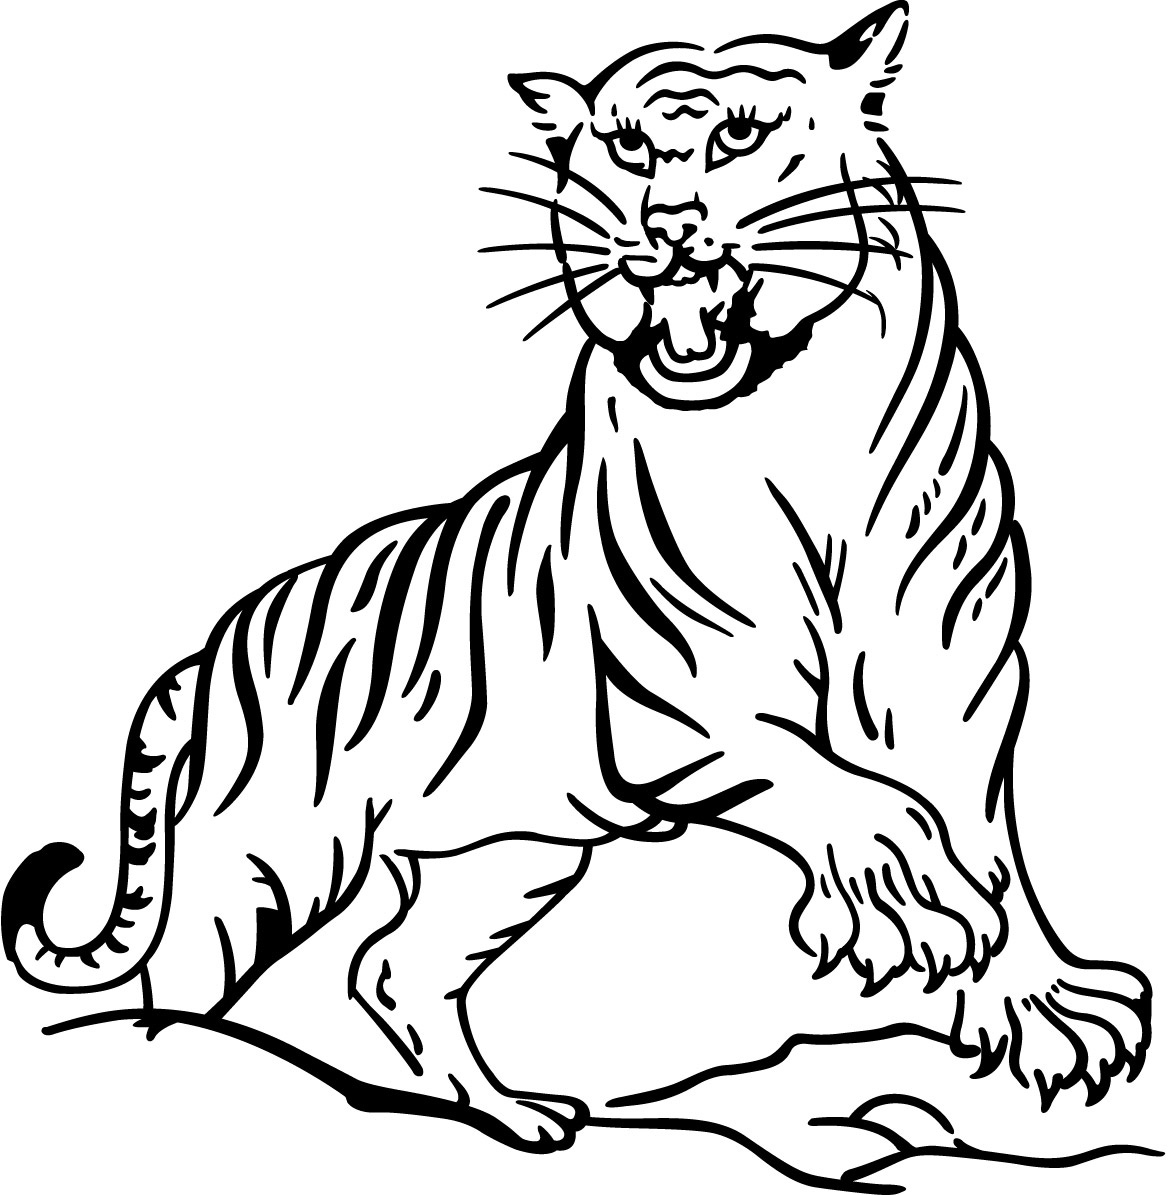 coloring page of tiger free tiger coloring pages tiger page coloring of